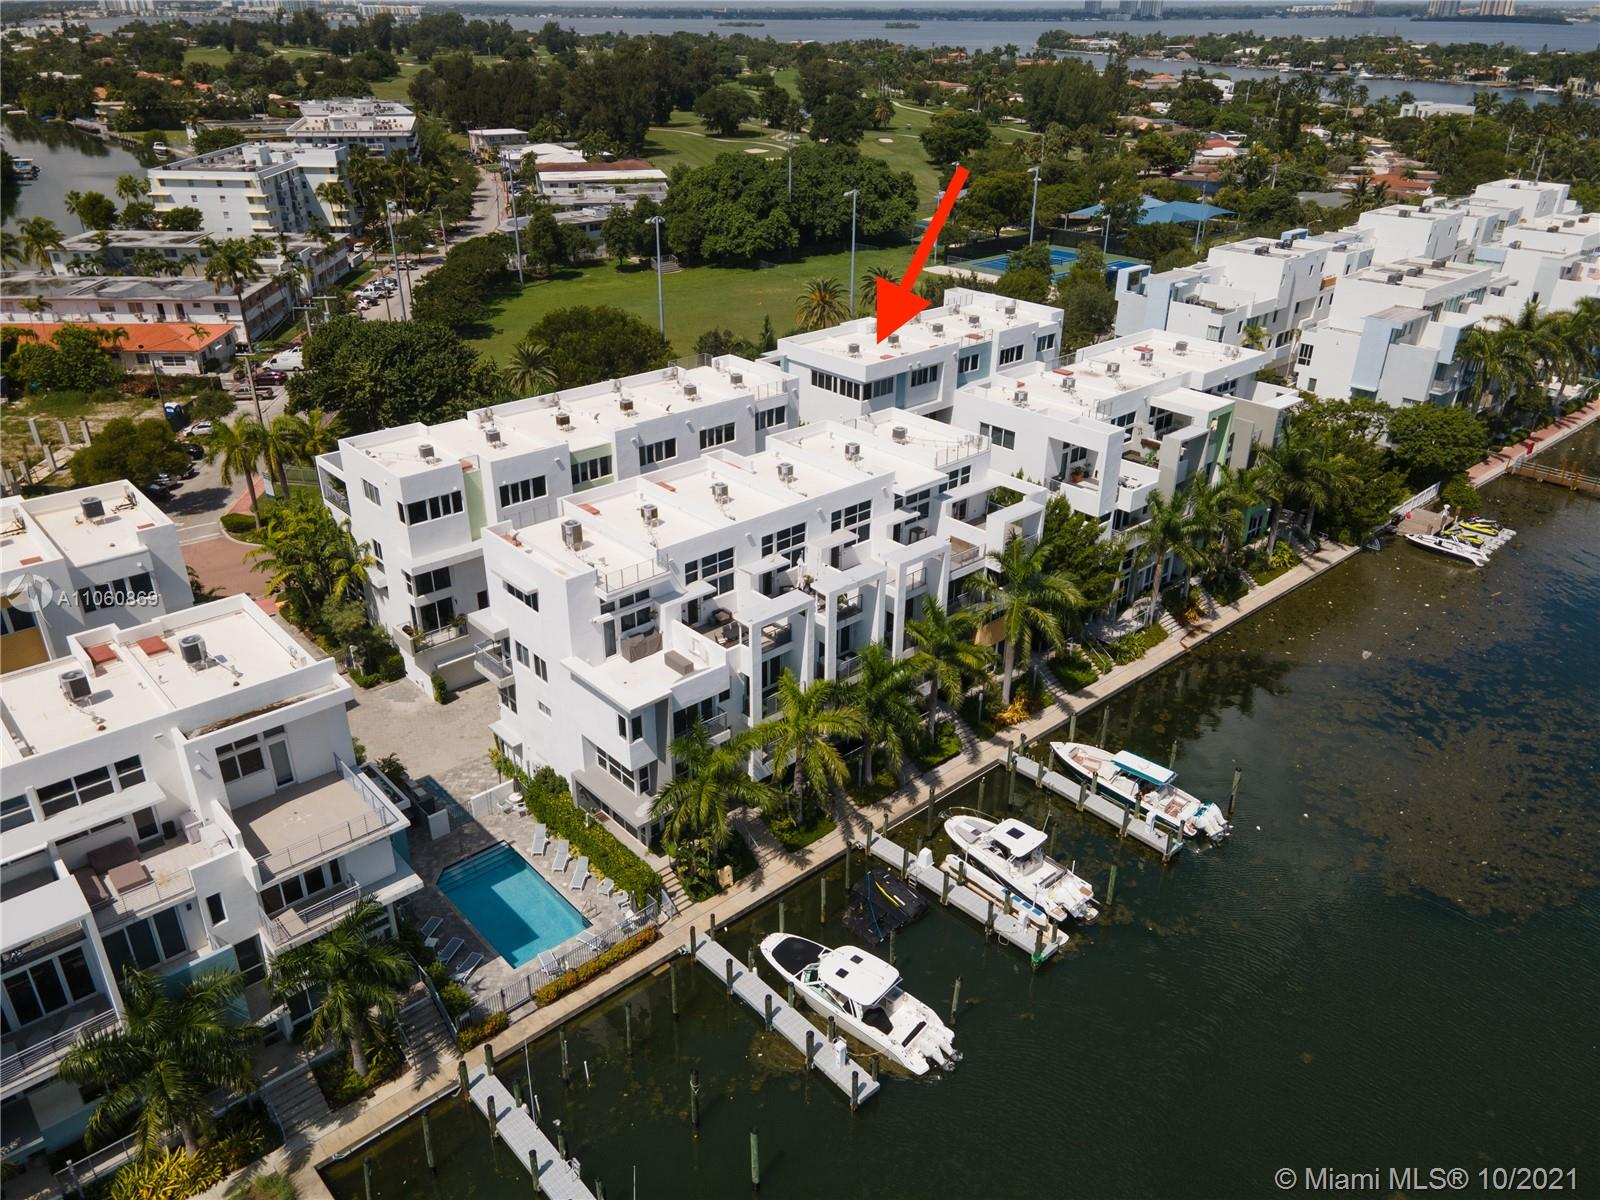 Stunning modern and spacious townhome in a gated community with private pool and Marina, minutes away from the beach. Private 2 car garage, elevator, and rooftop terrace with custom outdoor kitchen! Located on the highly desired Normandy Isle, this 3bd 3.5 ba includes: smart home tech, whole house water filtration system, motorized shades, electric car charger, & plenty of storage and built out closet space. Townhouse is situated on a quiet and private street with an 18-hole golf course, tennis & basketball courts, children's playground, & Fairway Park all right outside your front door. Solid reinforced concrete building with impact resistant windows, intercom, laundry room, open concept kitchen with stainless steel appliances and GAS cooktop. Low HOA dues. Great investment opportunity